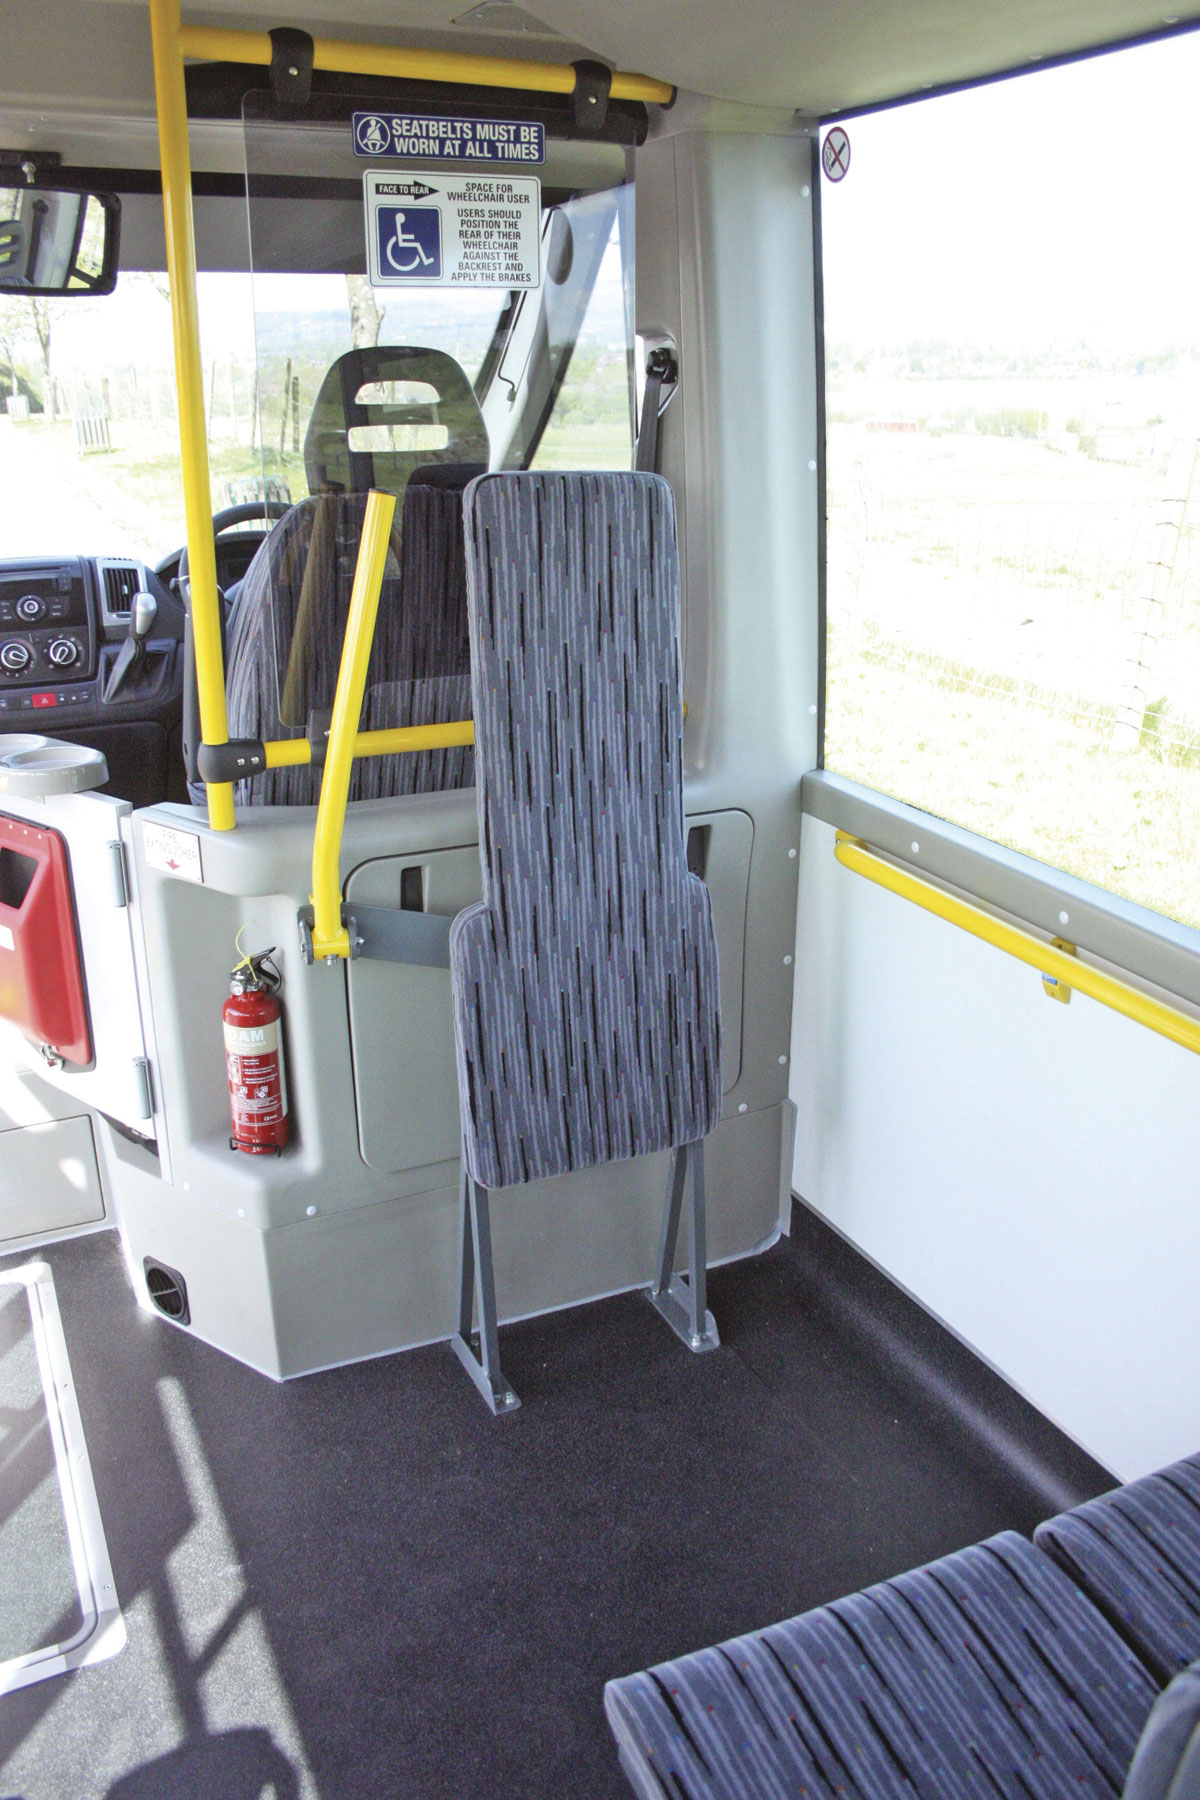 The wheelchair bay with ironing board back rest, lap belt and fold down security arm